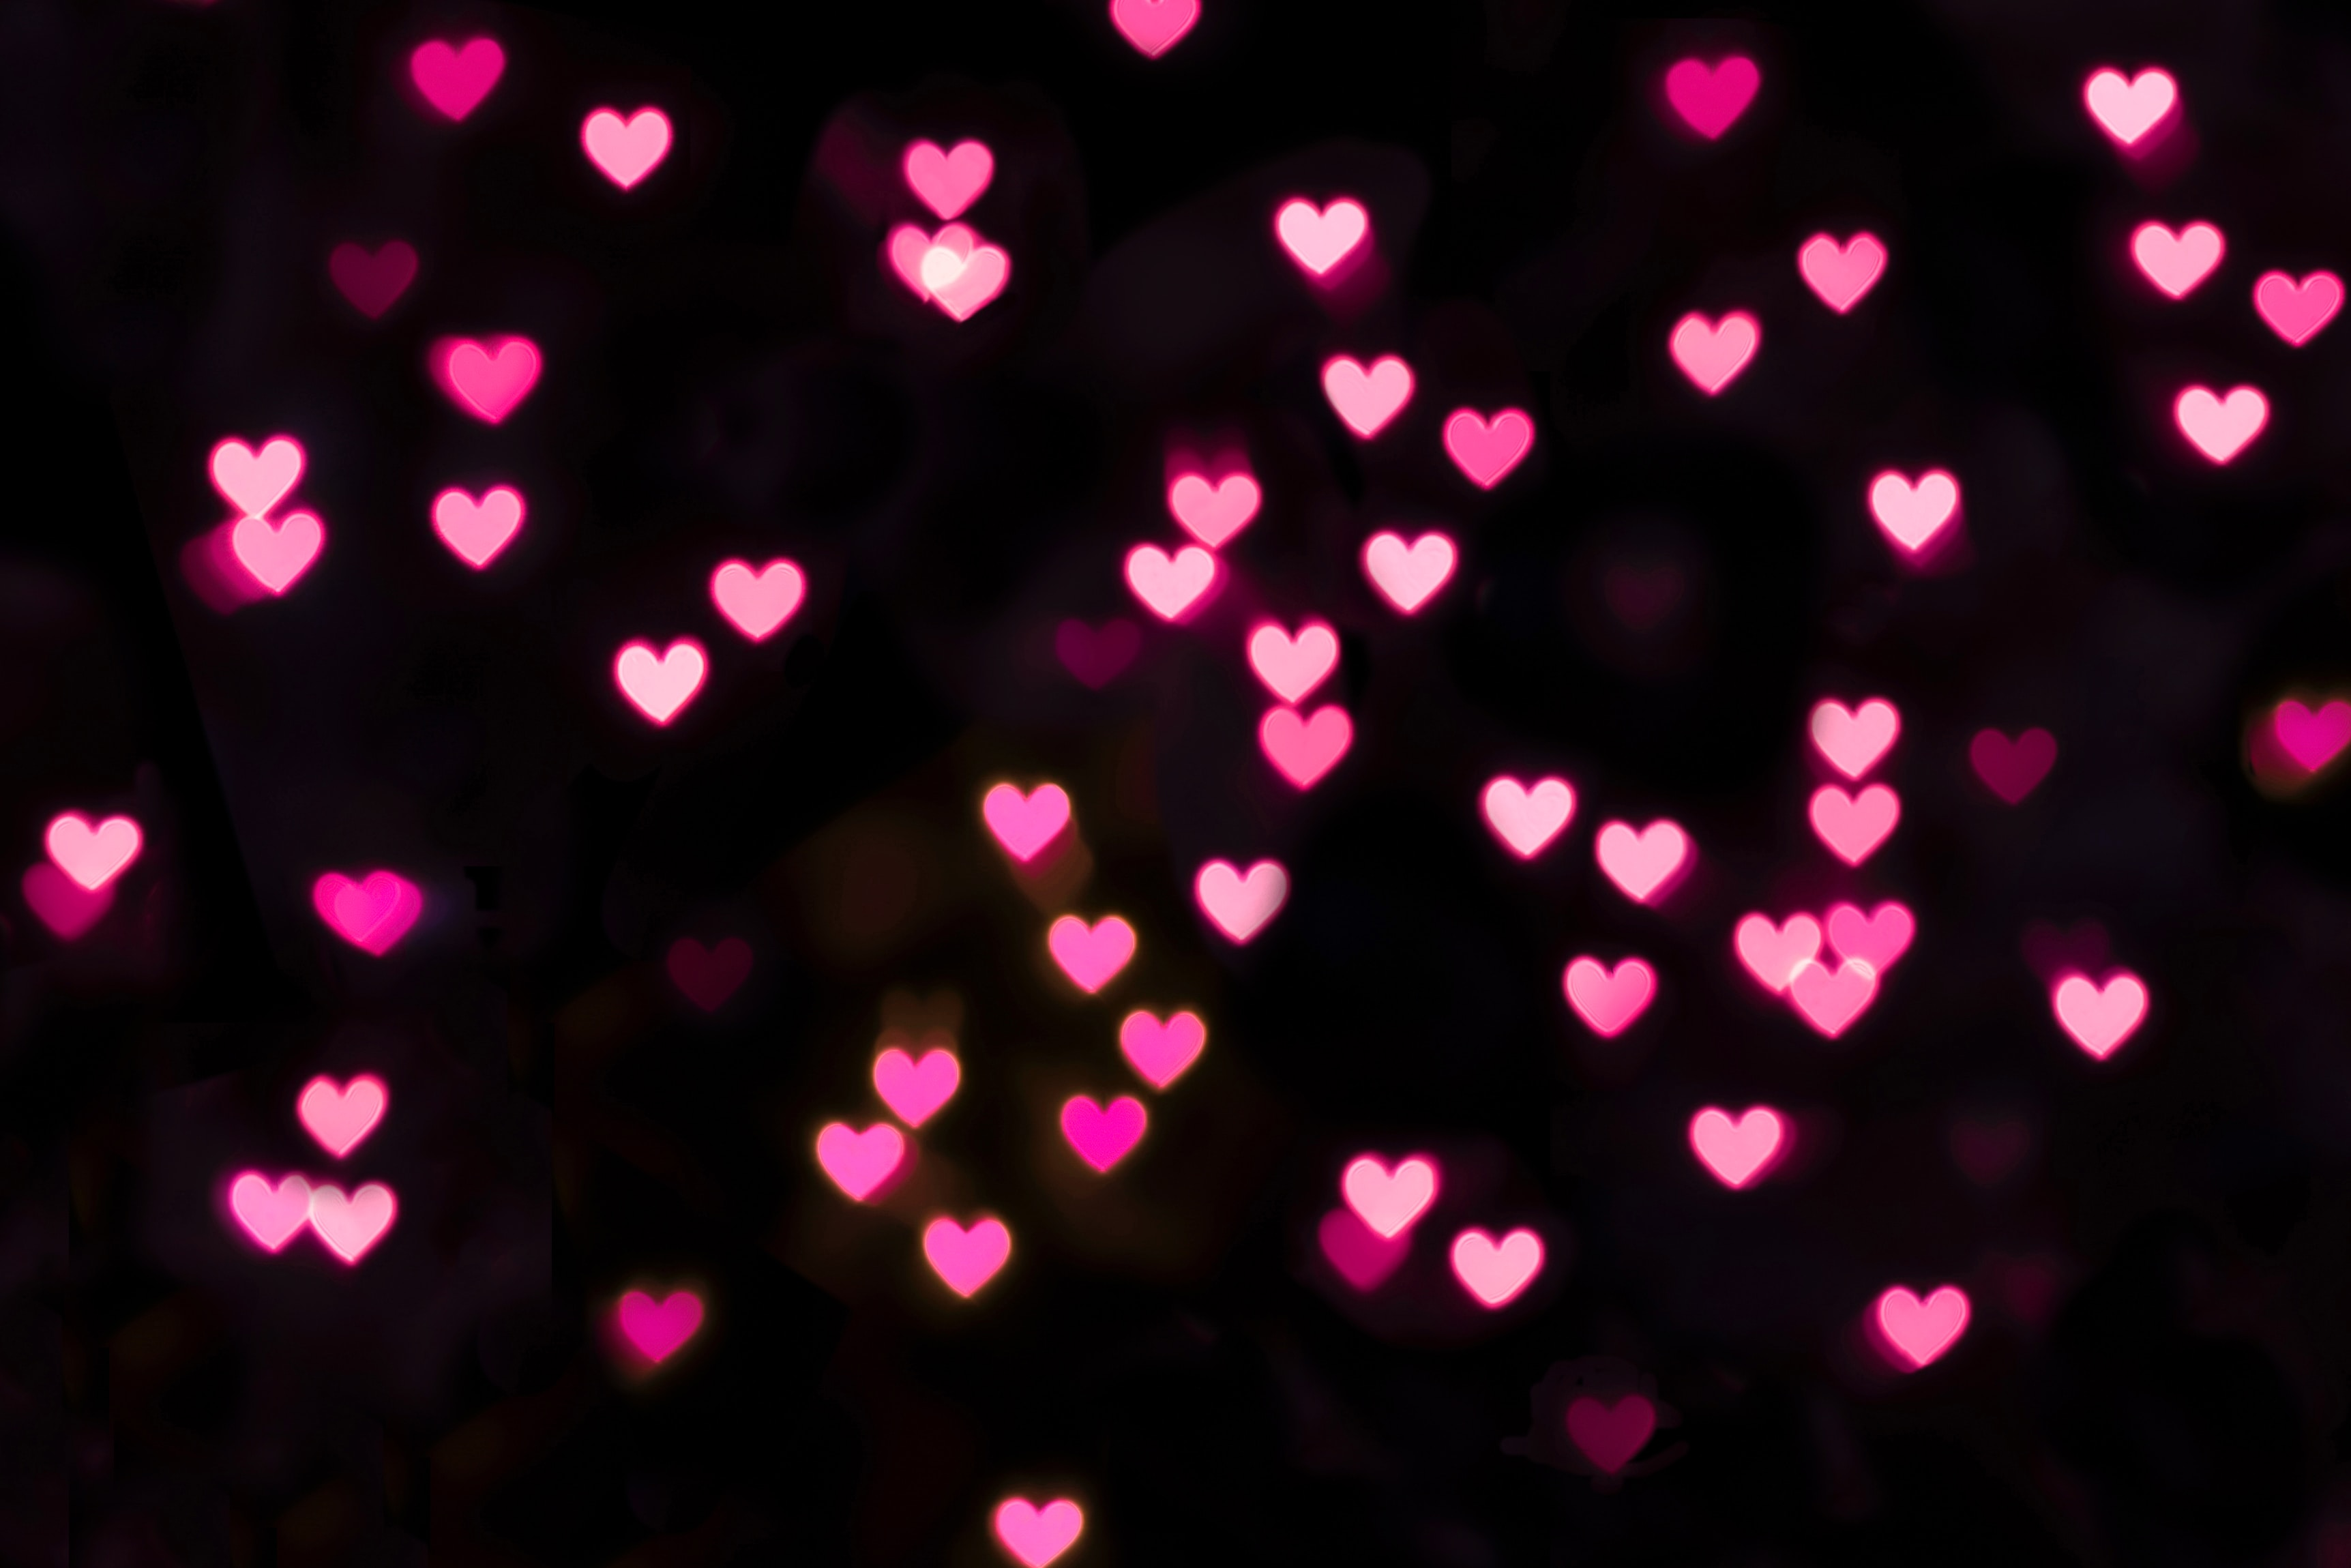 66727 download wallpaper Hearts, Lights, Glow, Pink, Love screensavers and pictures for free